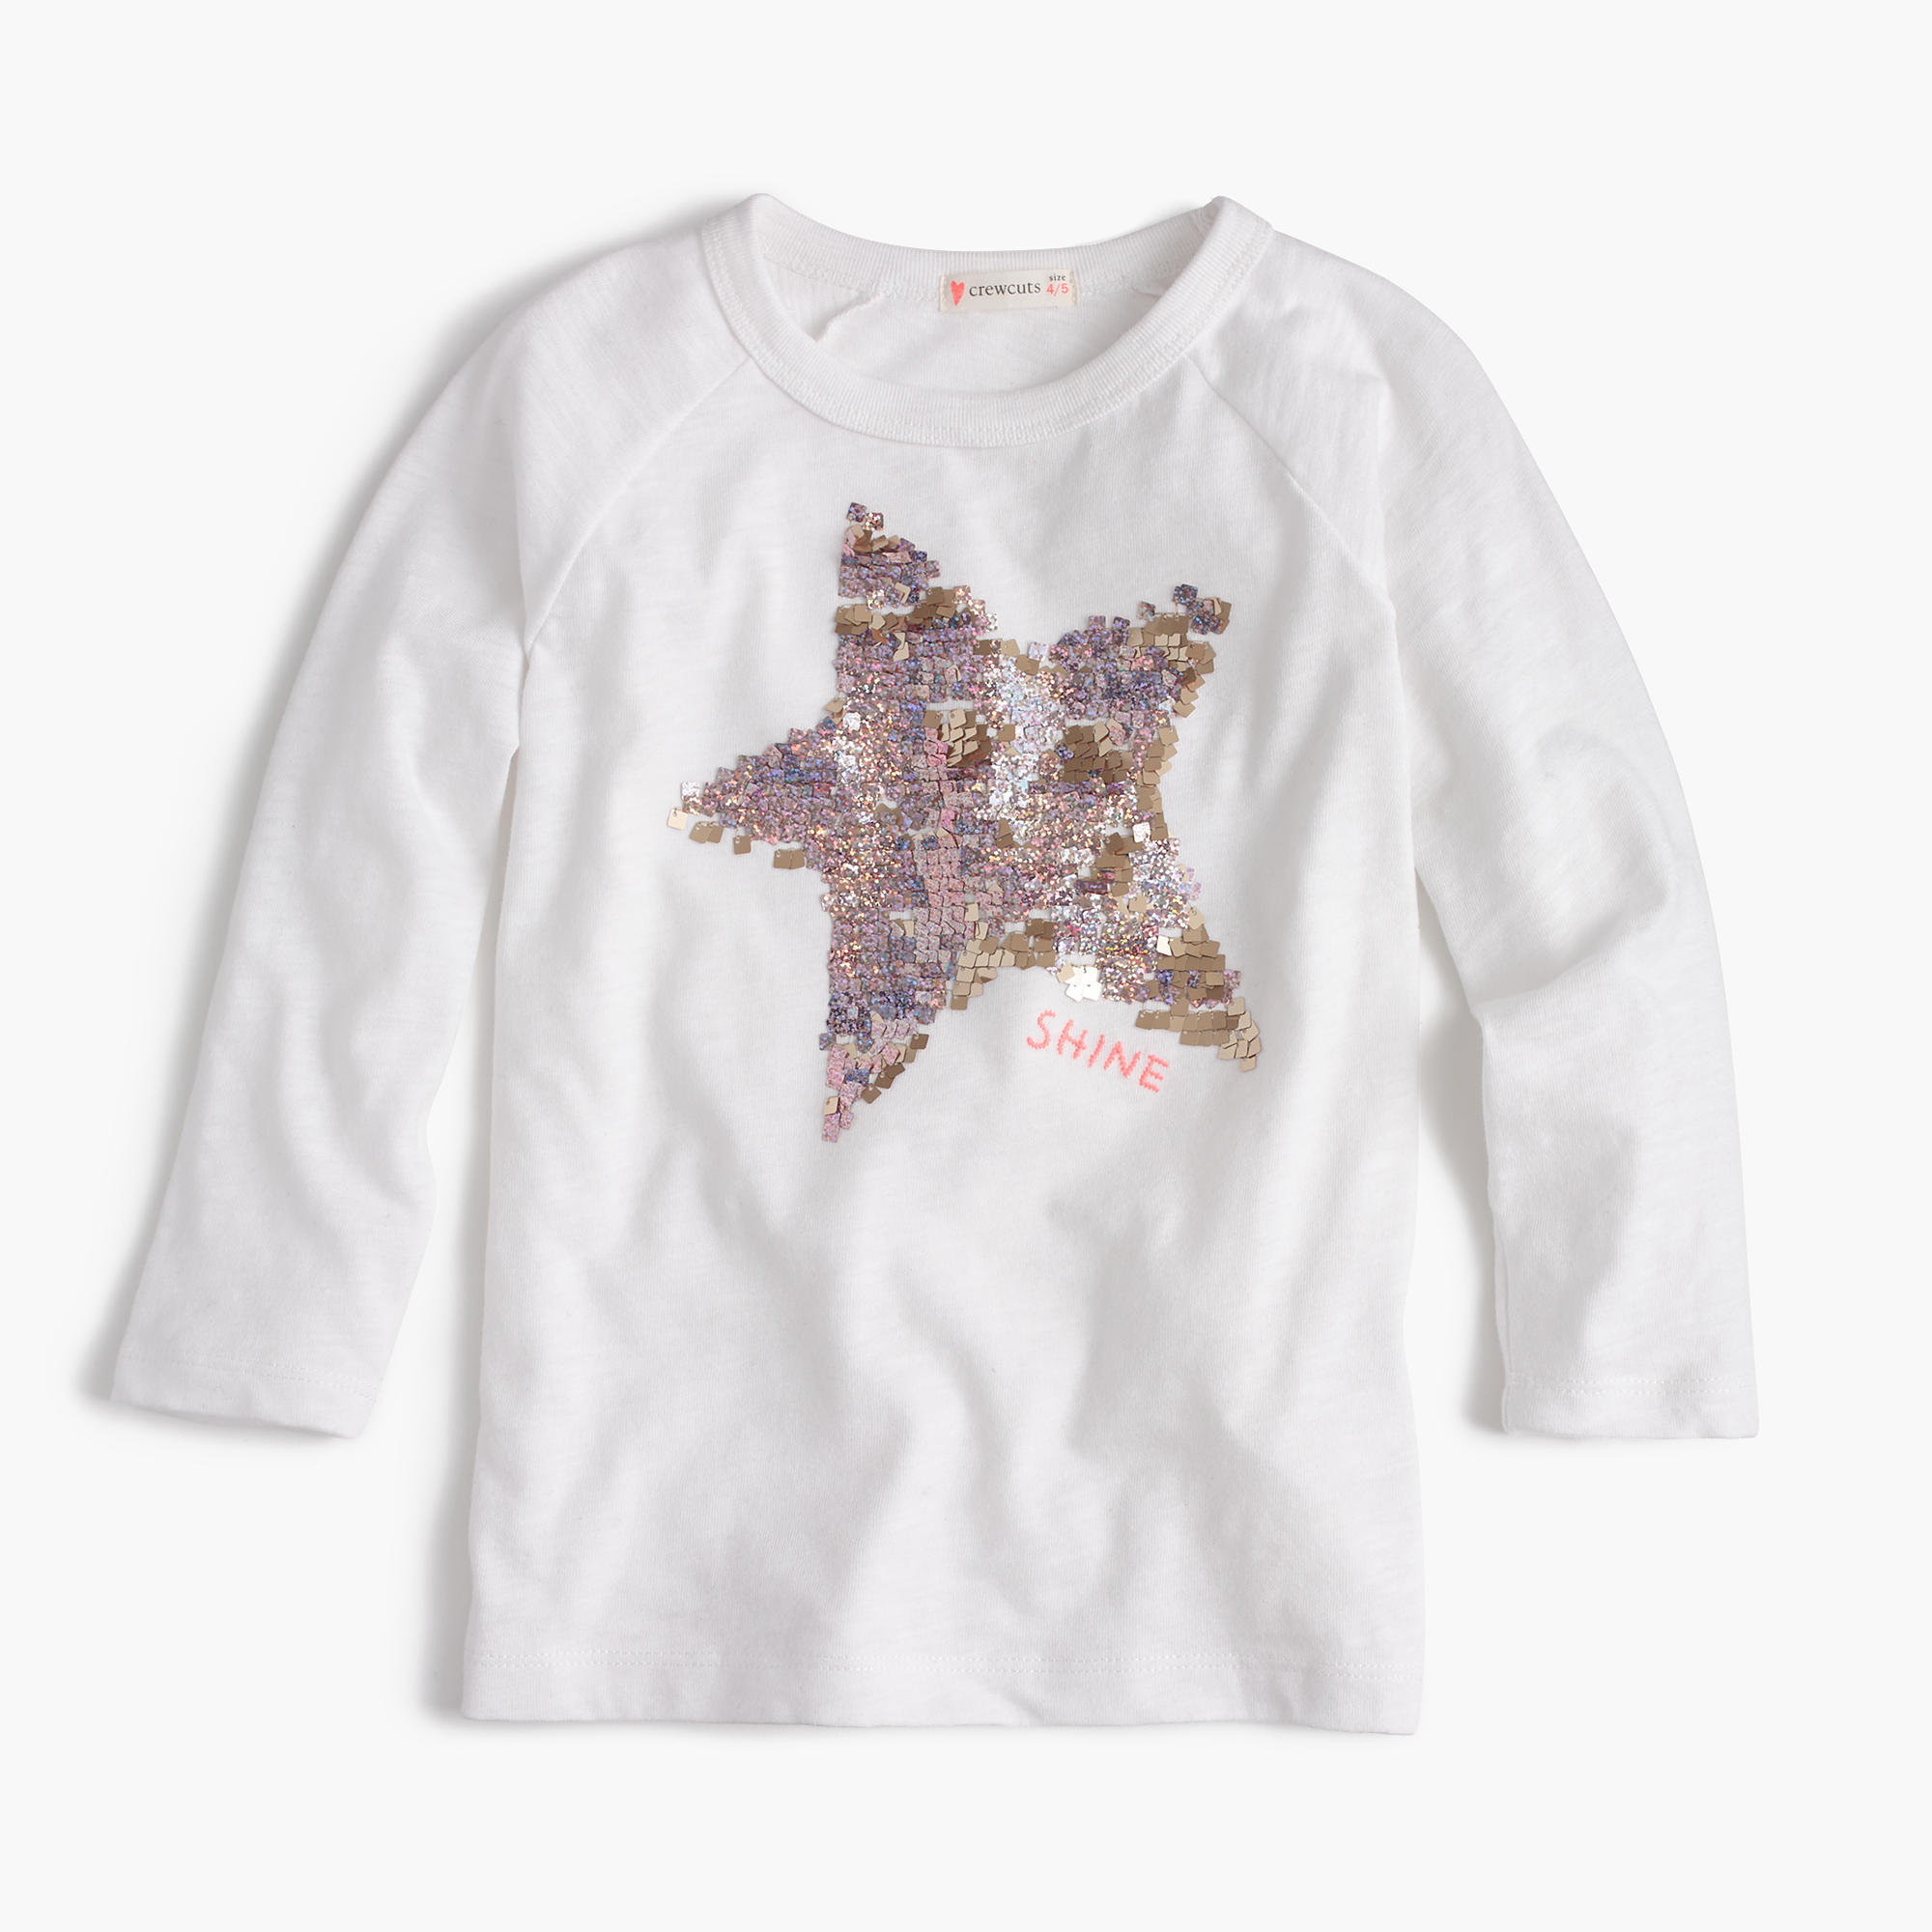 Girls 39 sequin star t shirt girls 39 tees j crew for Girls sequin t shirt